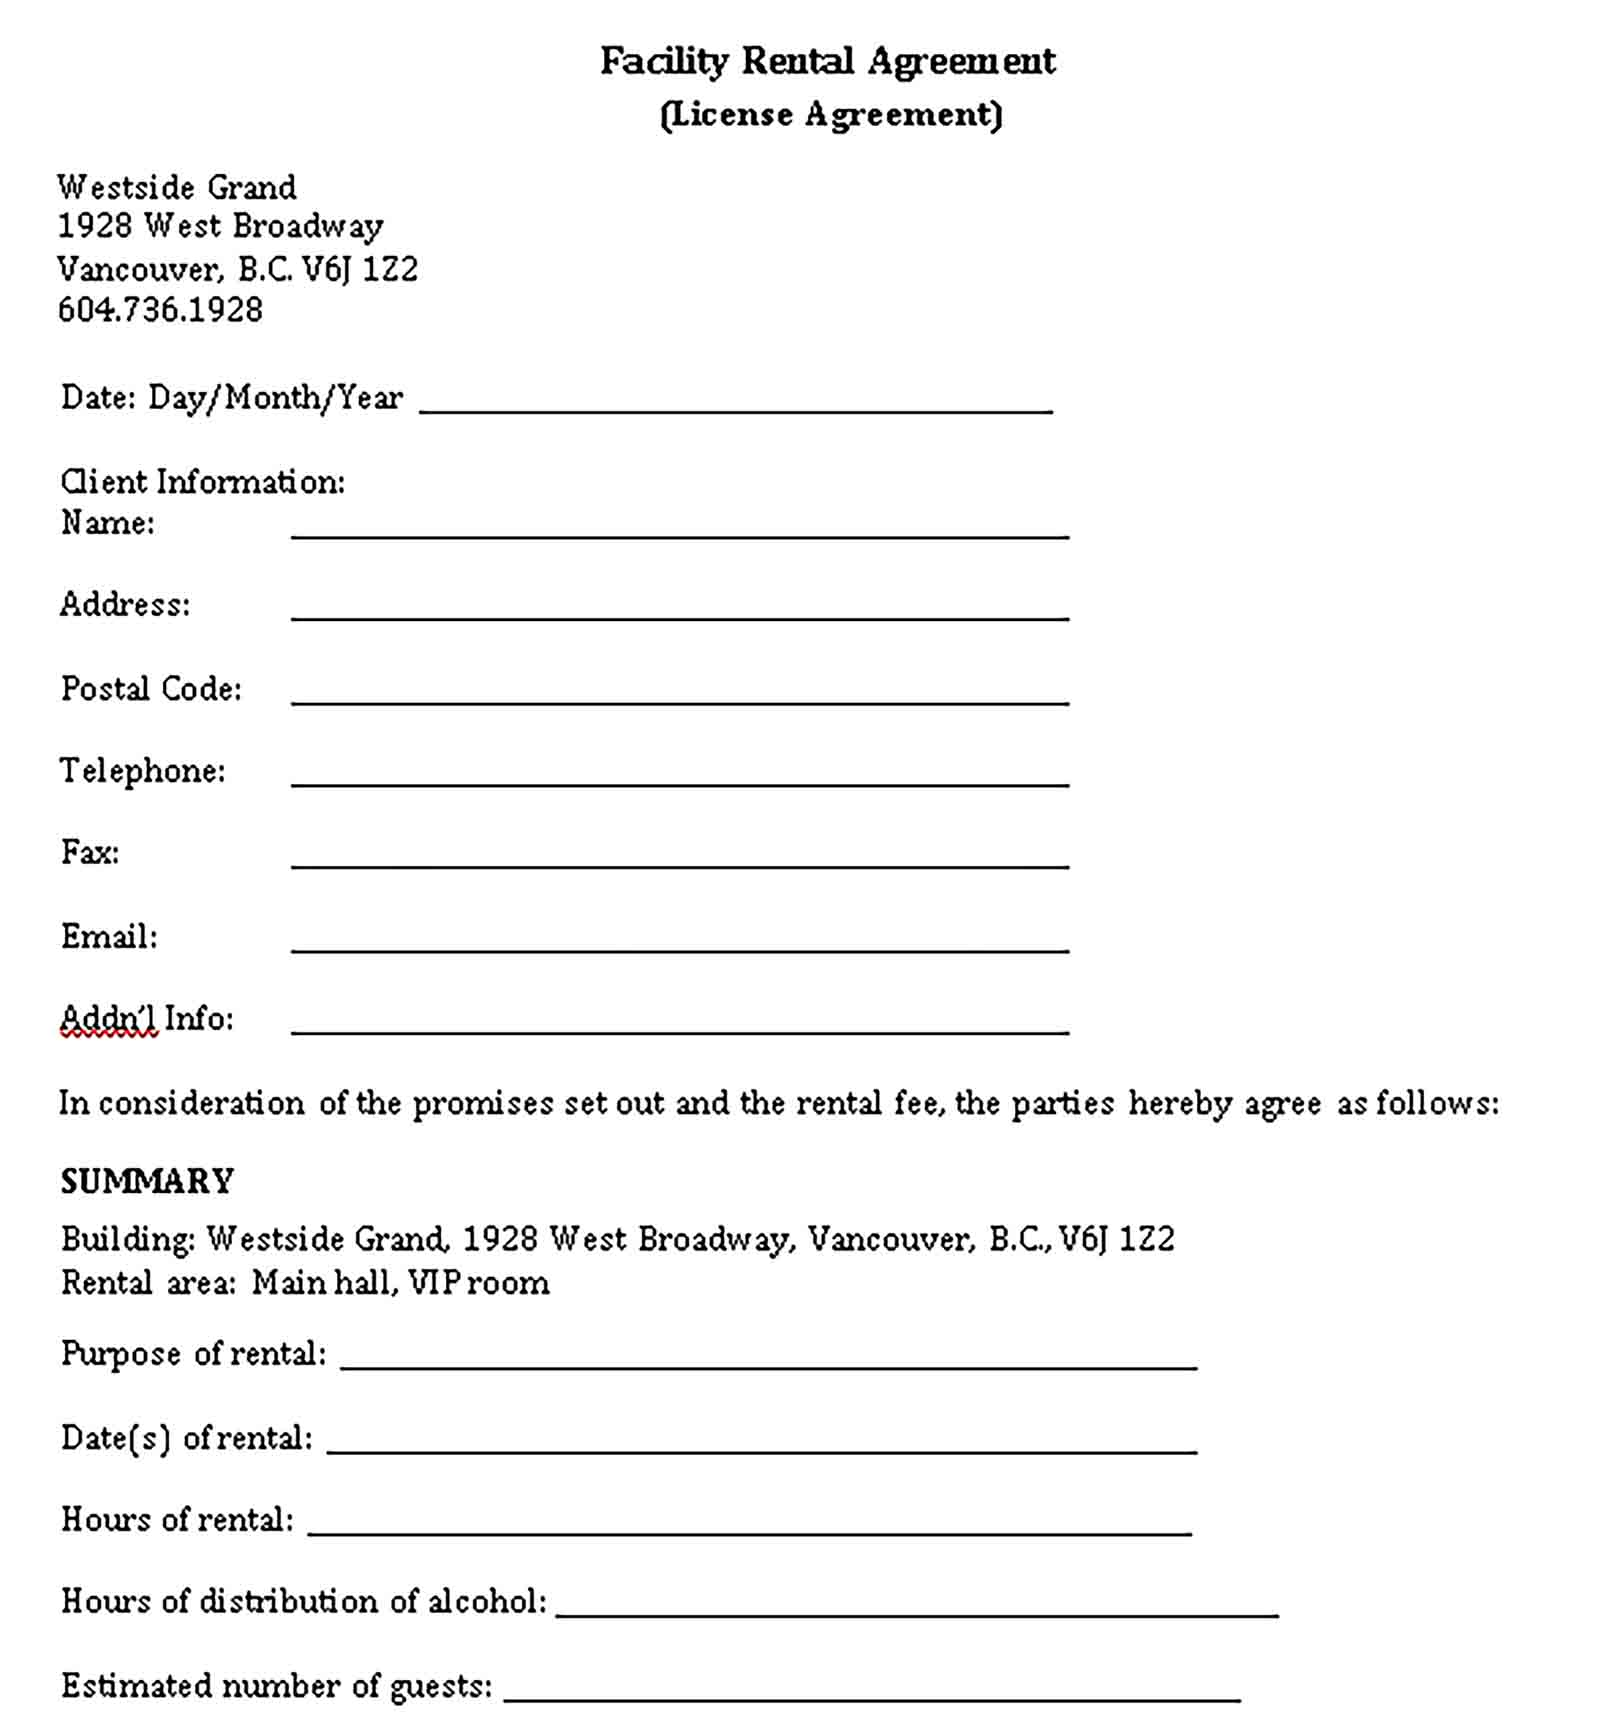 Templates facility rental agreement Sample 002